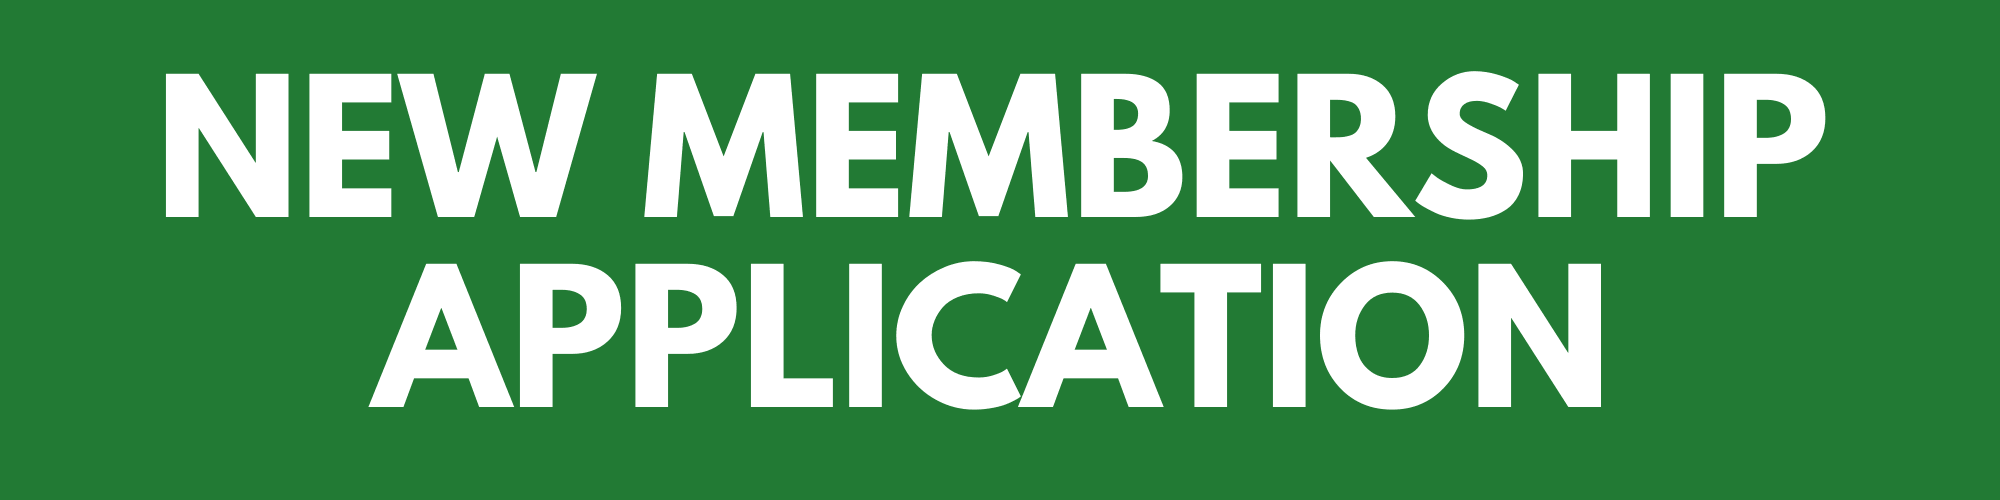 New Application Button - Click to submit a new membership application